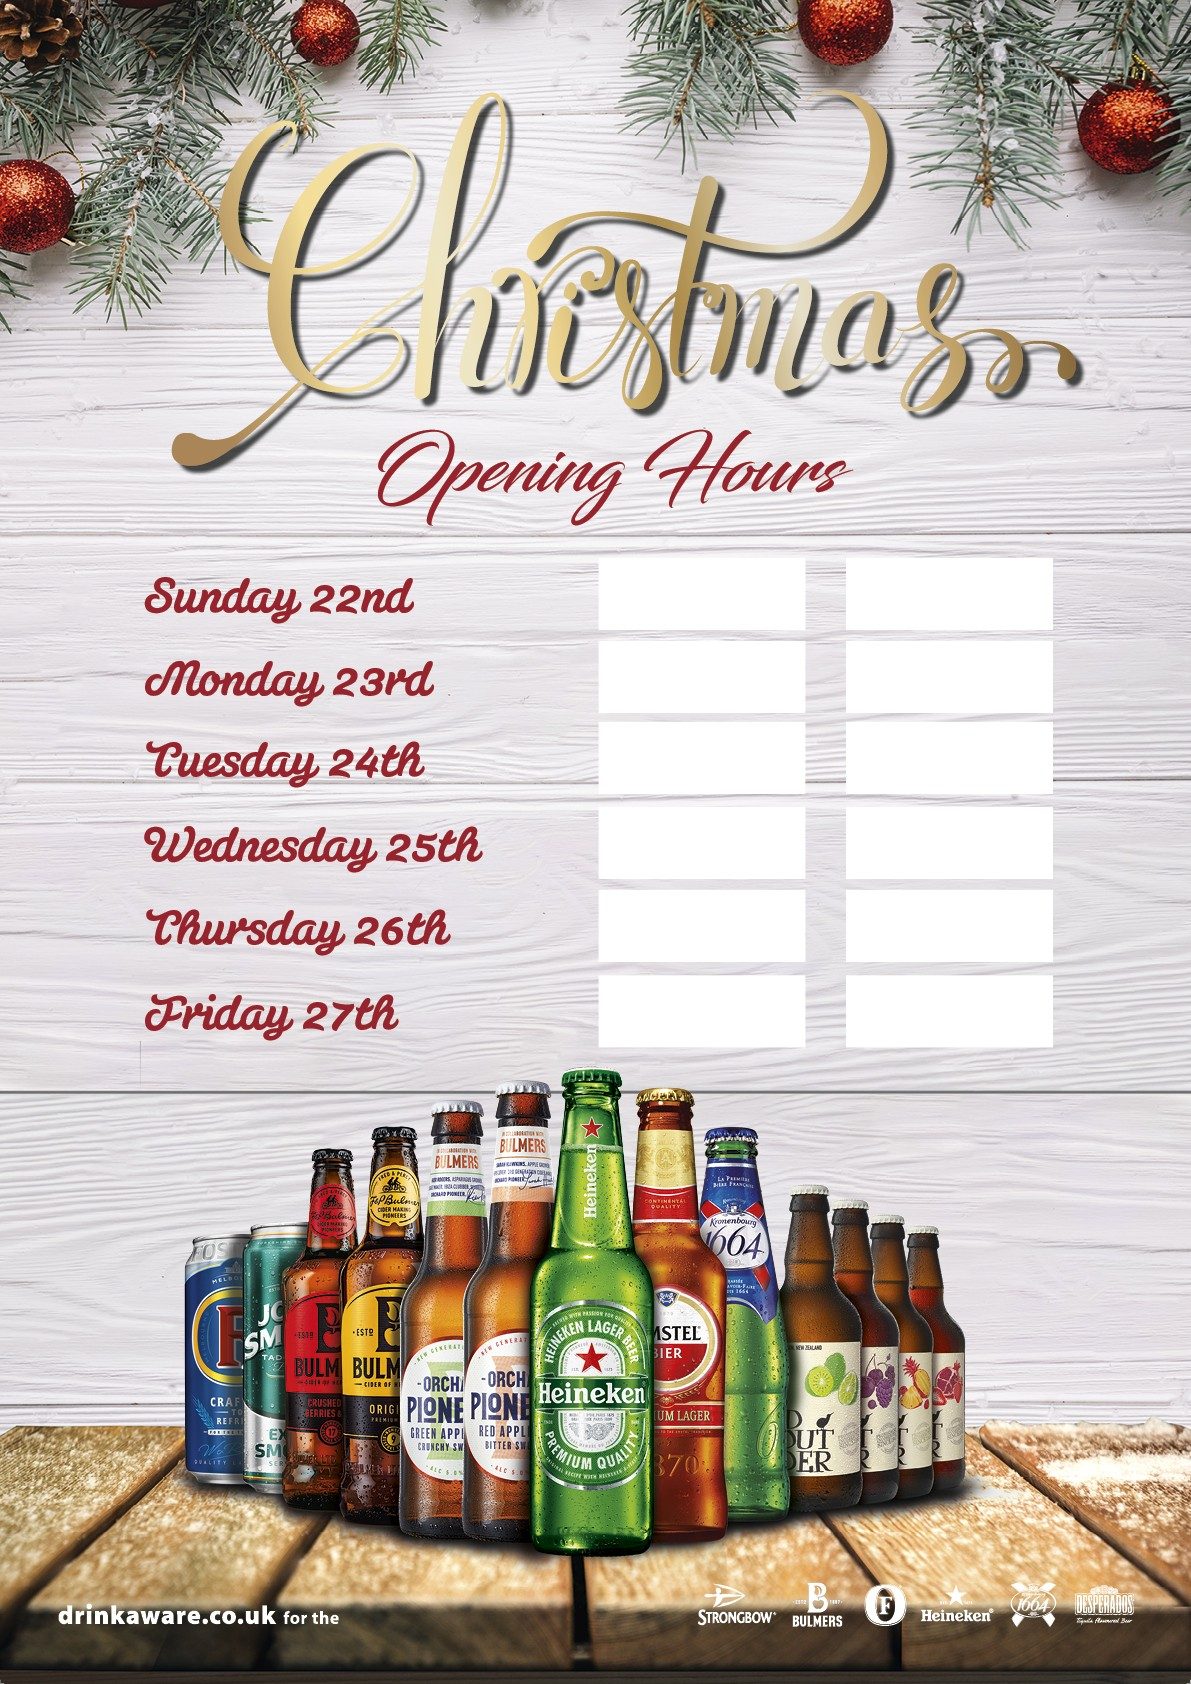 Christmas Opening Hours Poster (Branded)